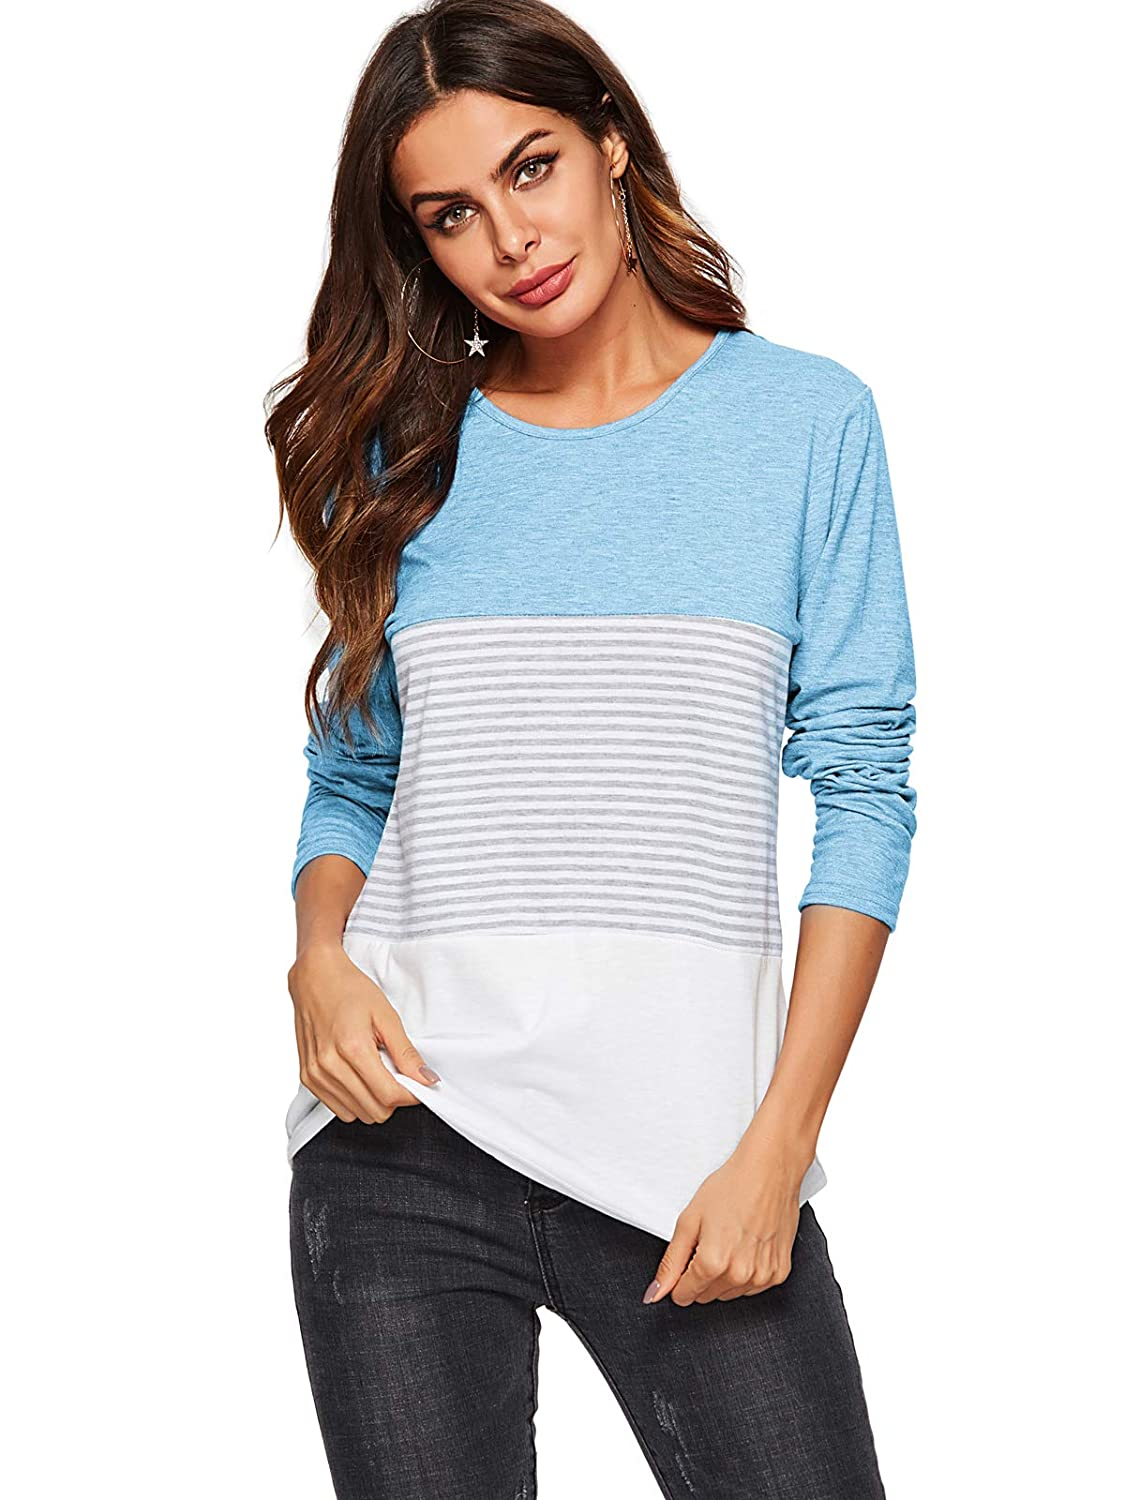 AMORETU Women's Round Neck Striped Long Sleeve Tops Color Block Blouse T-Shirt